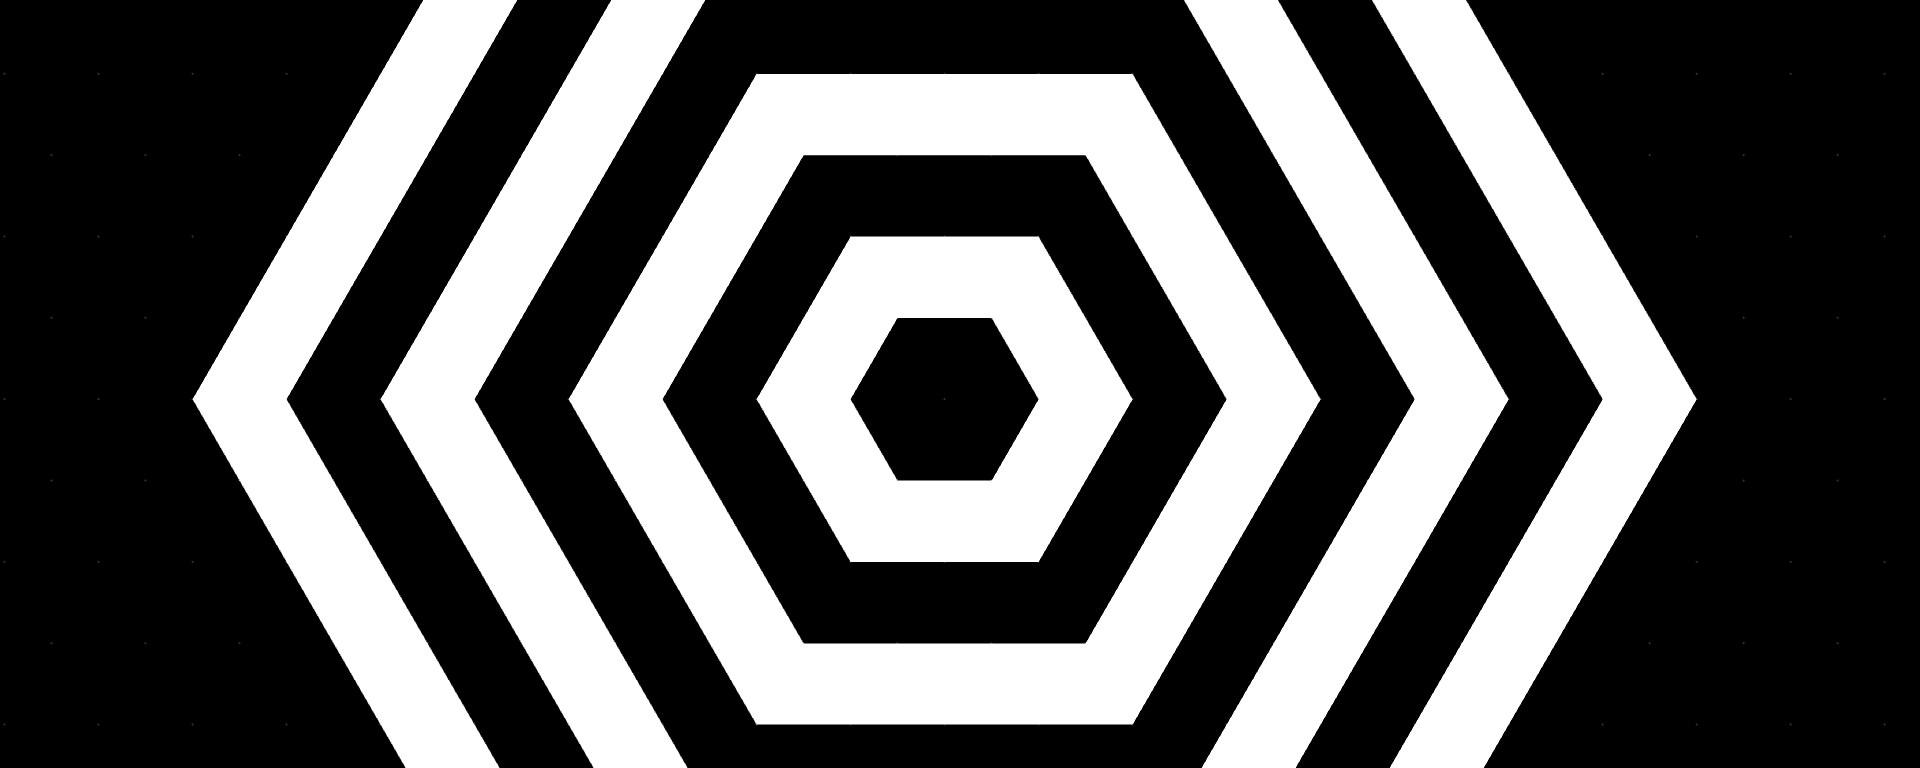 "Concentric Hexagons (Photo courtesy of <a href=""https://flic.kr/p/huyZri"">Simon Strandgaard on Flickr </a>).Edited by O's List under <a href=""https://creativecommons.org/licenses/by/2.0/legalcode"">the Creative Commons License</a>.)"